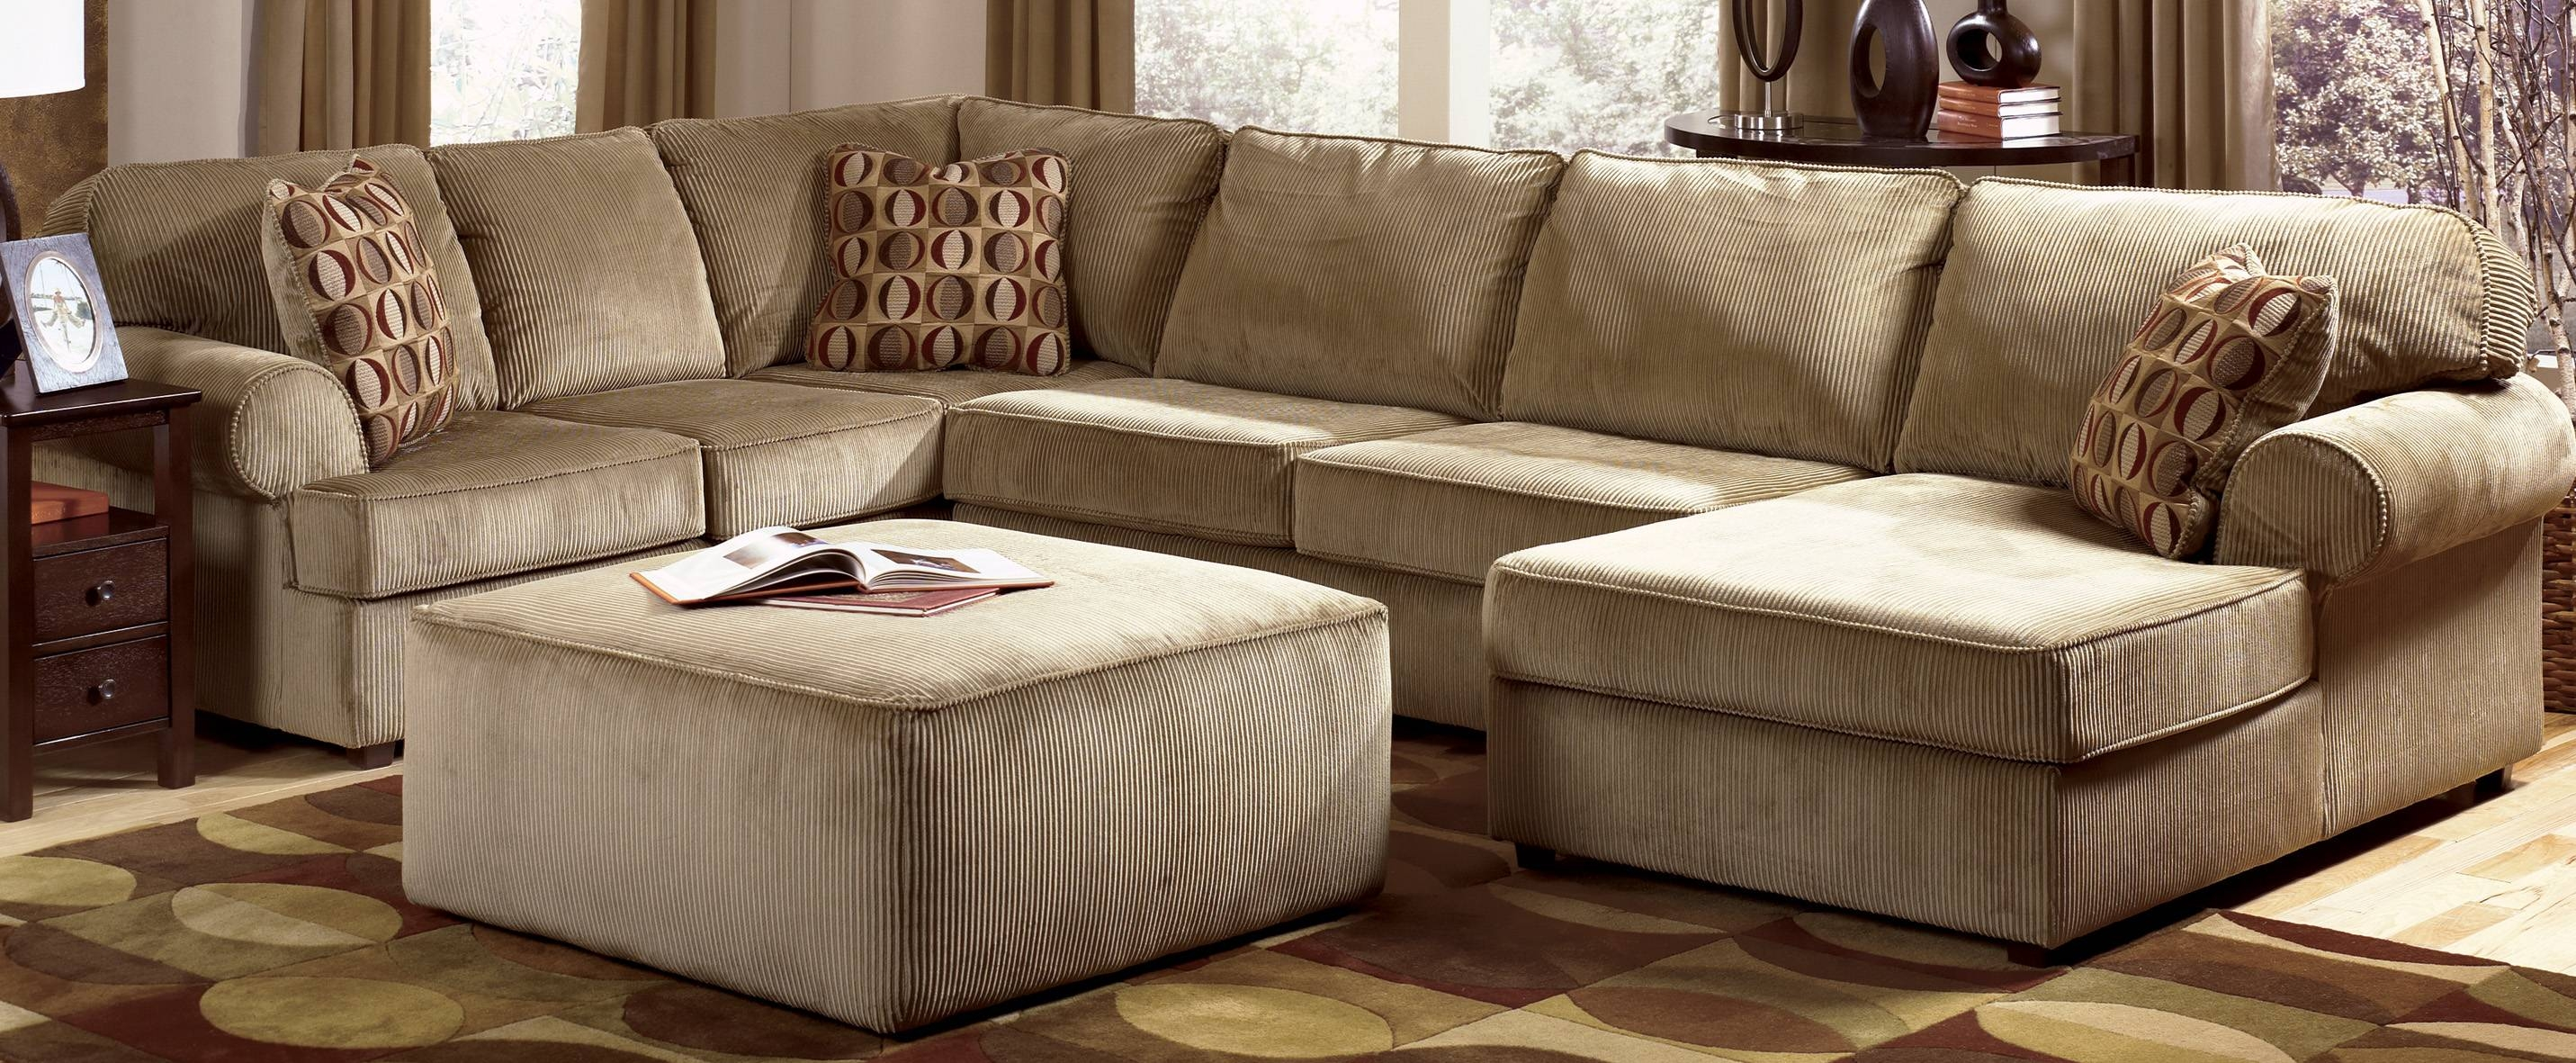 30 Best Ideas of Expensive Sectional Sofas